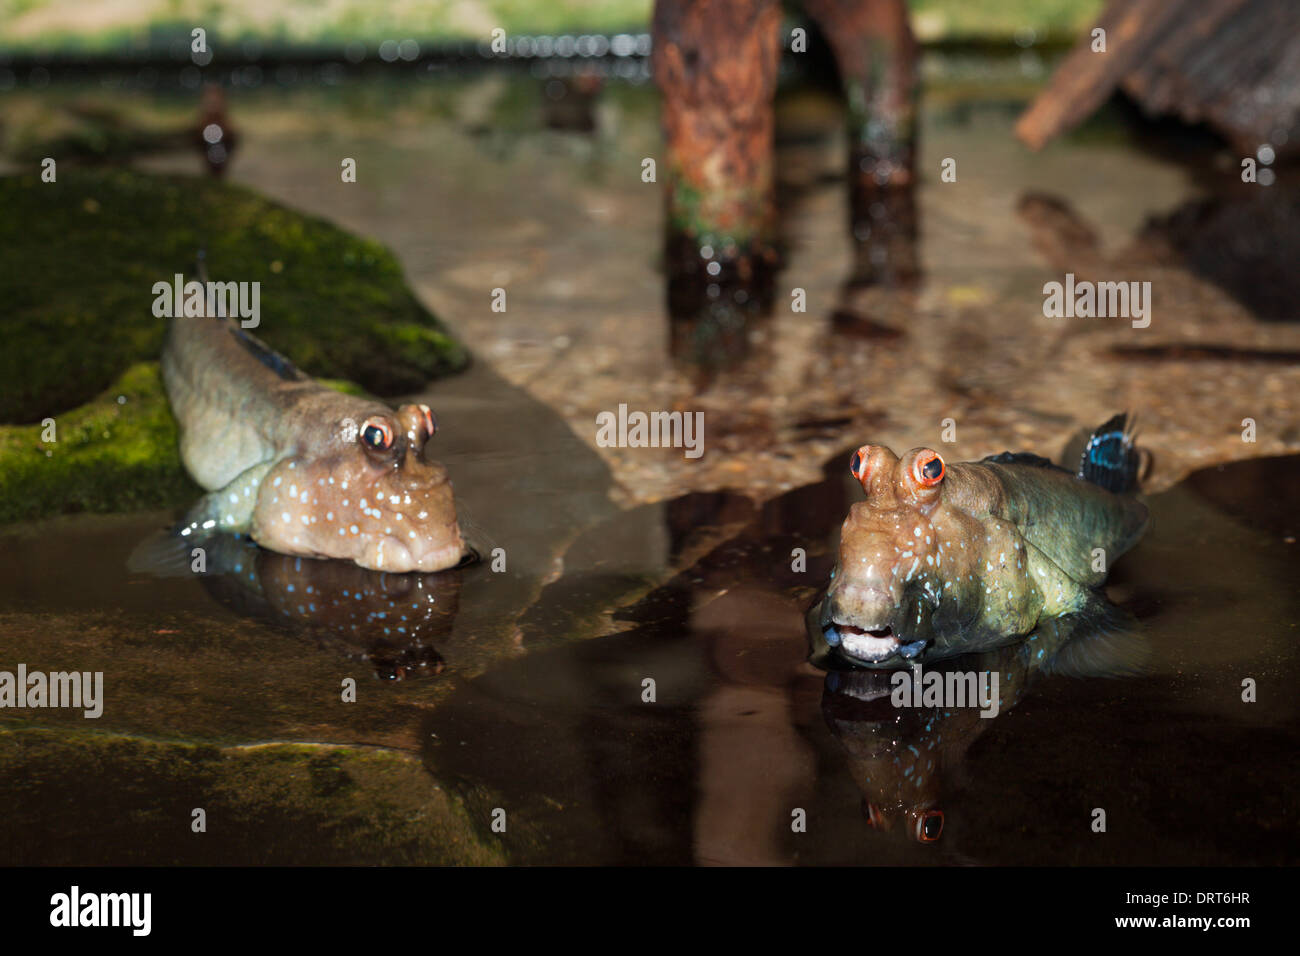 Mudskipper, Periophthalmus spec., au Mozambique Photo Stock